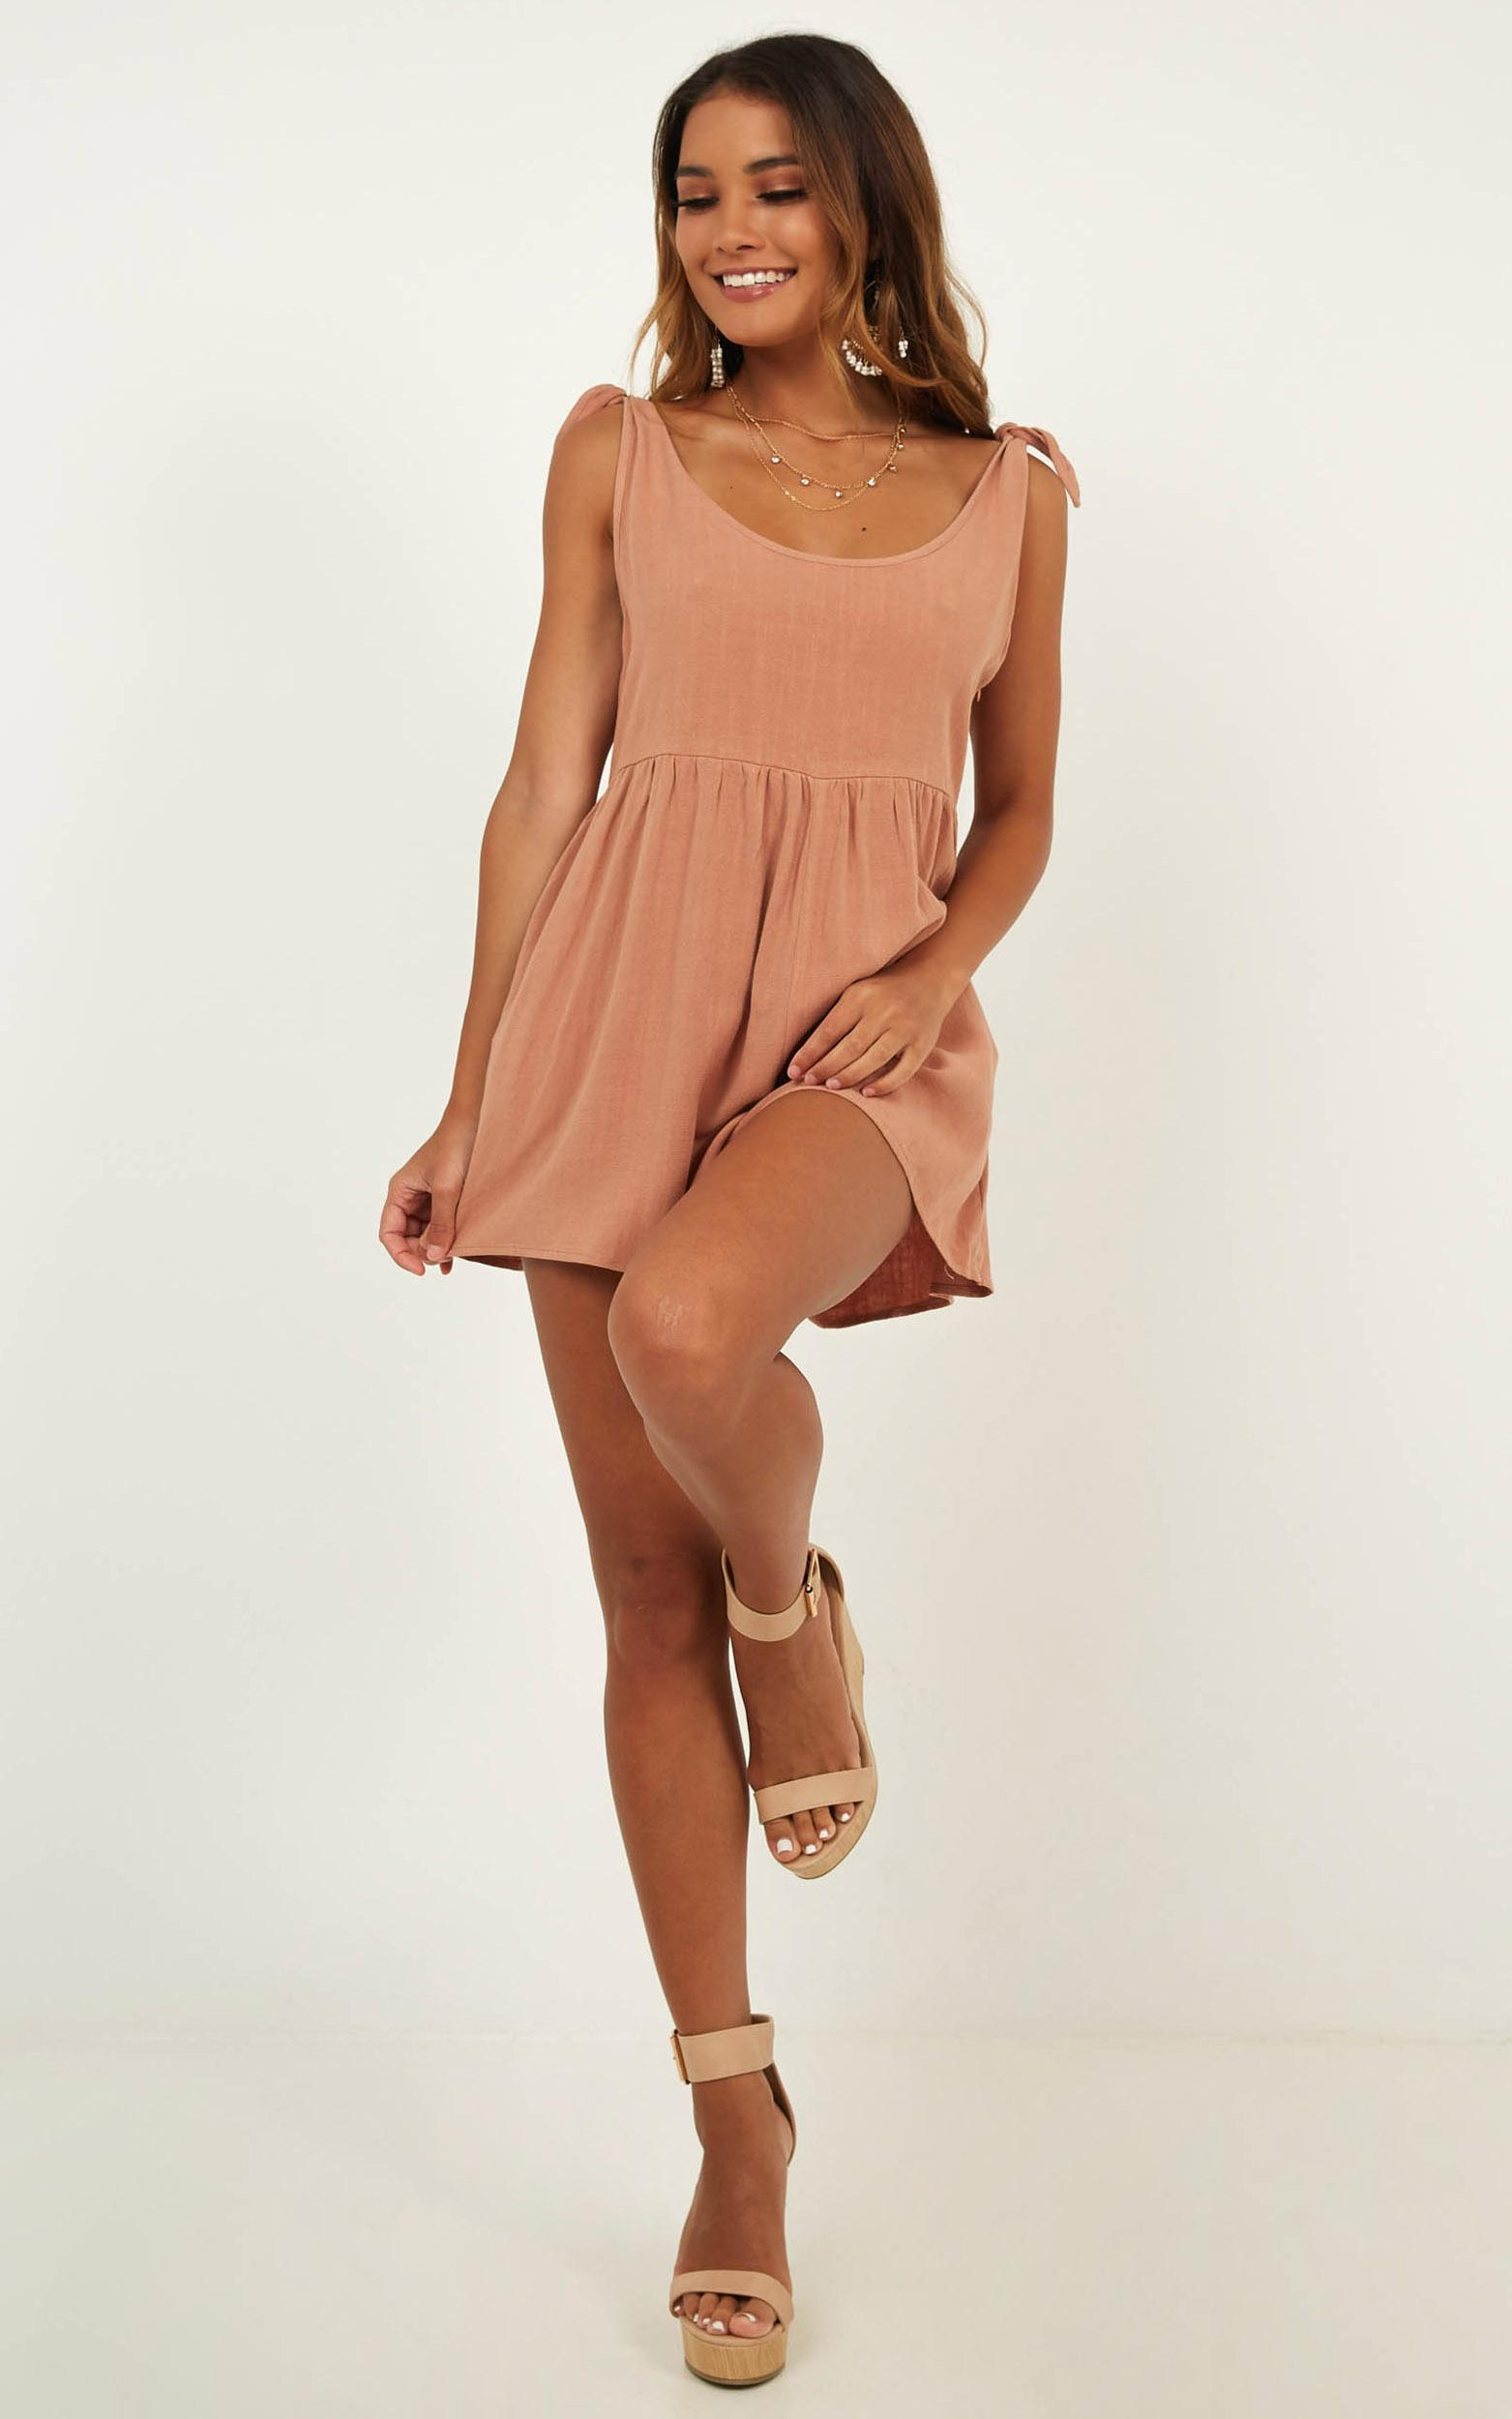 Bring This Down Playsuit In Dusty Rose - 16 (XXL), Rust, hi-res image number null